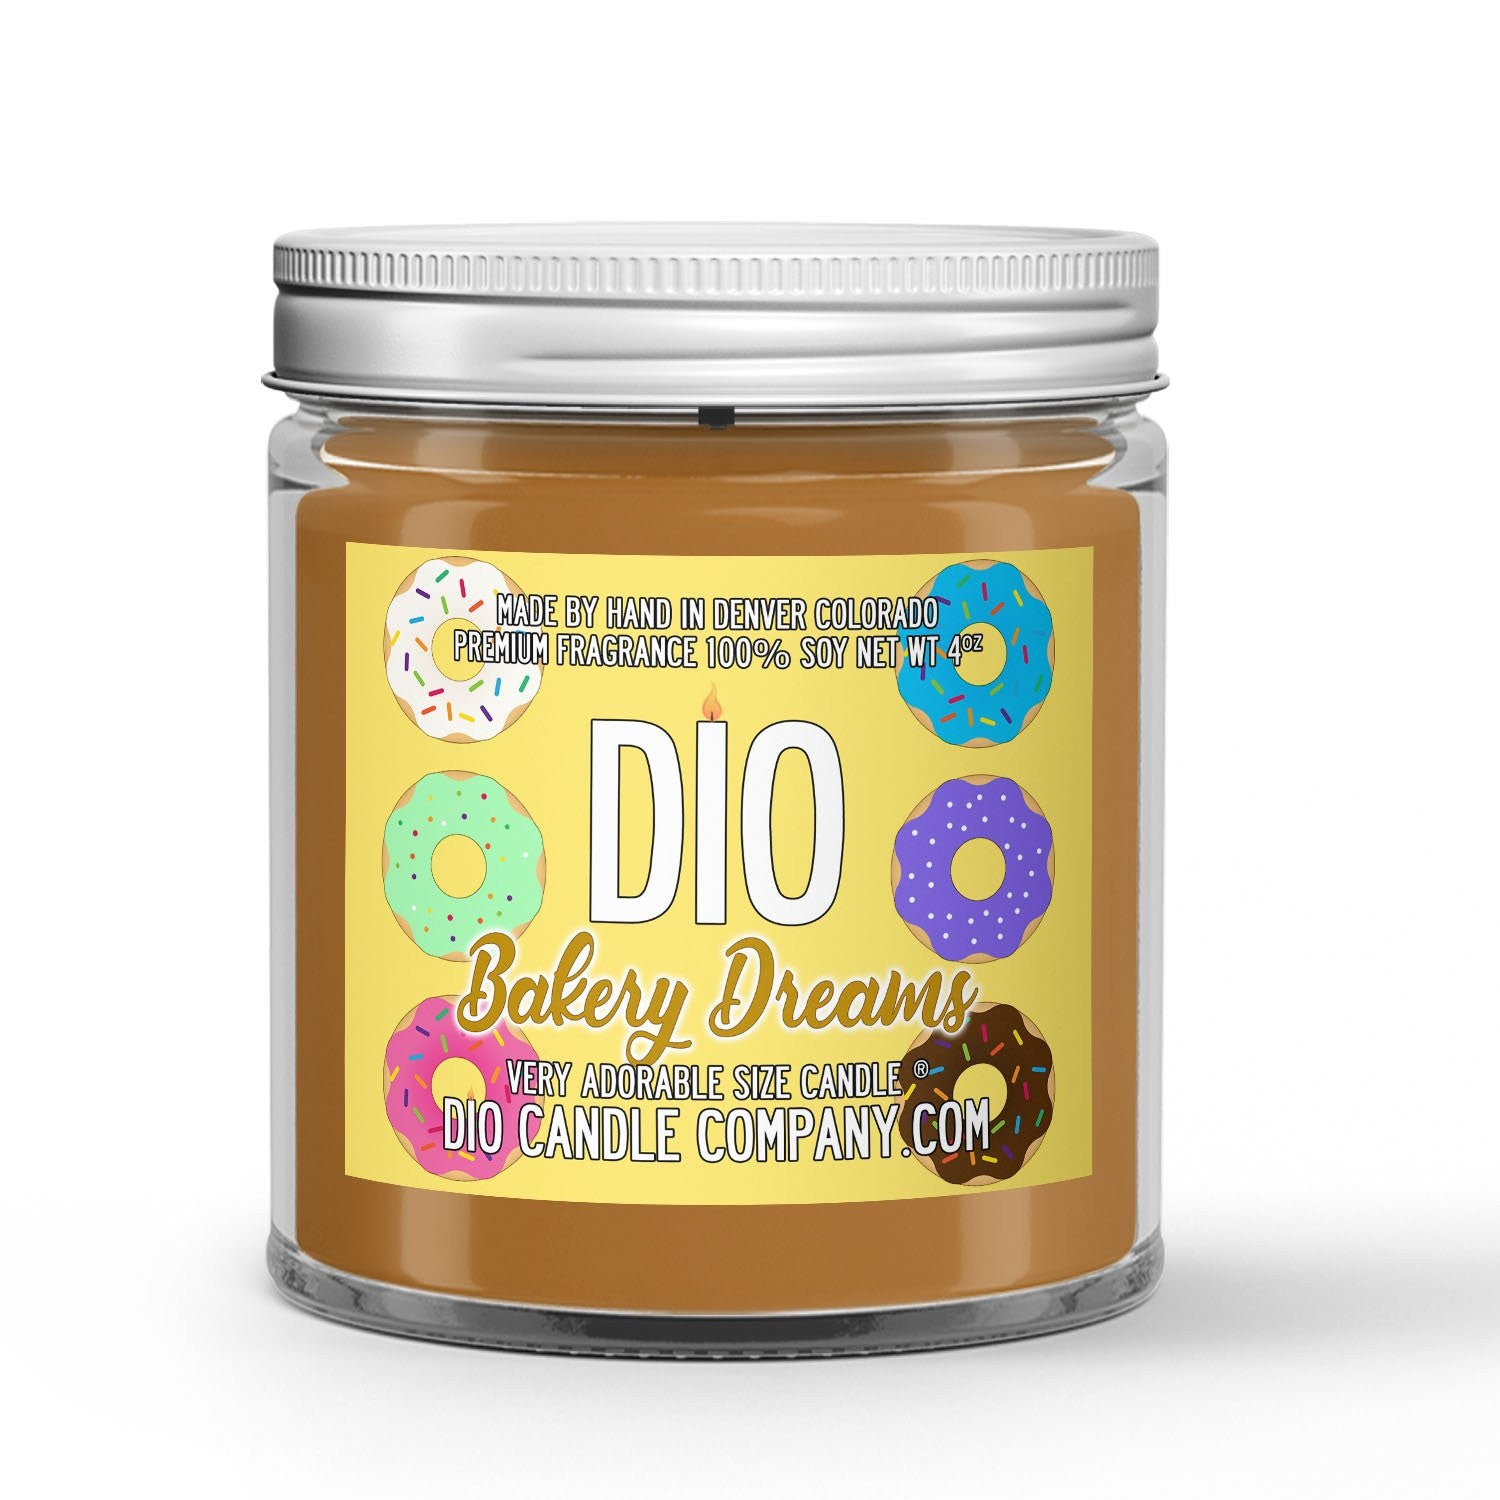 Bakery Dreams Candle